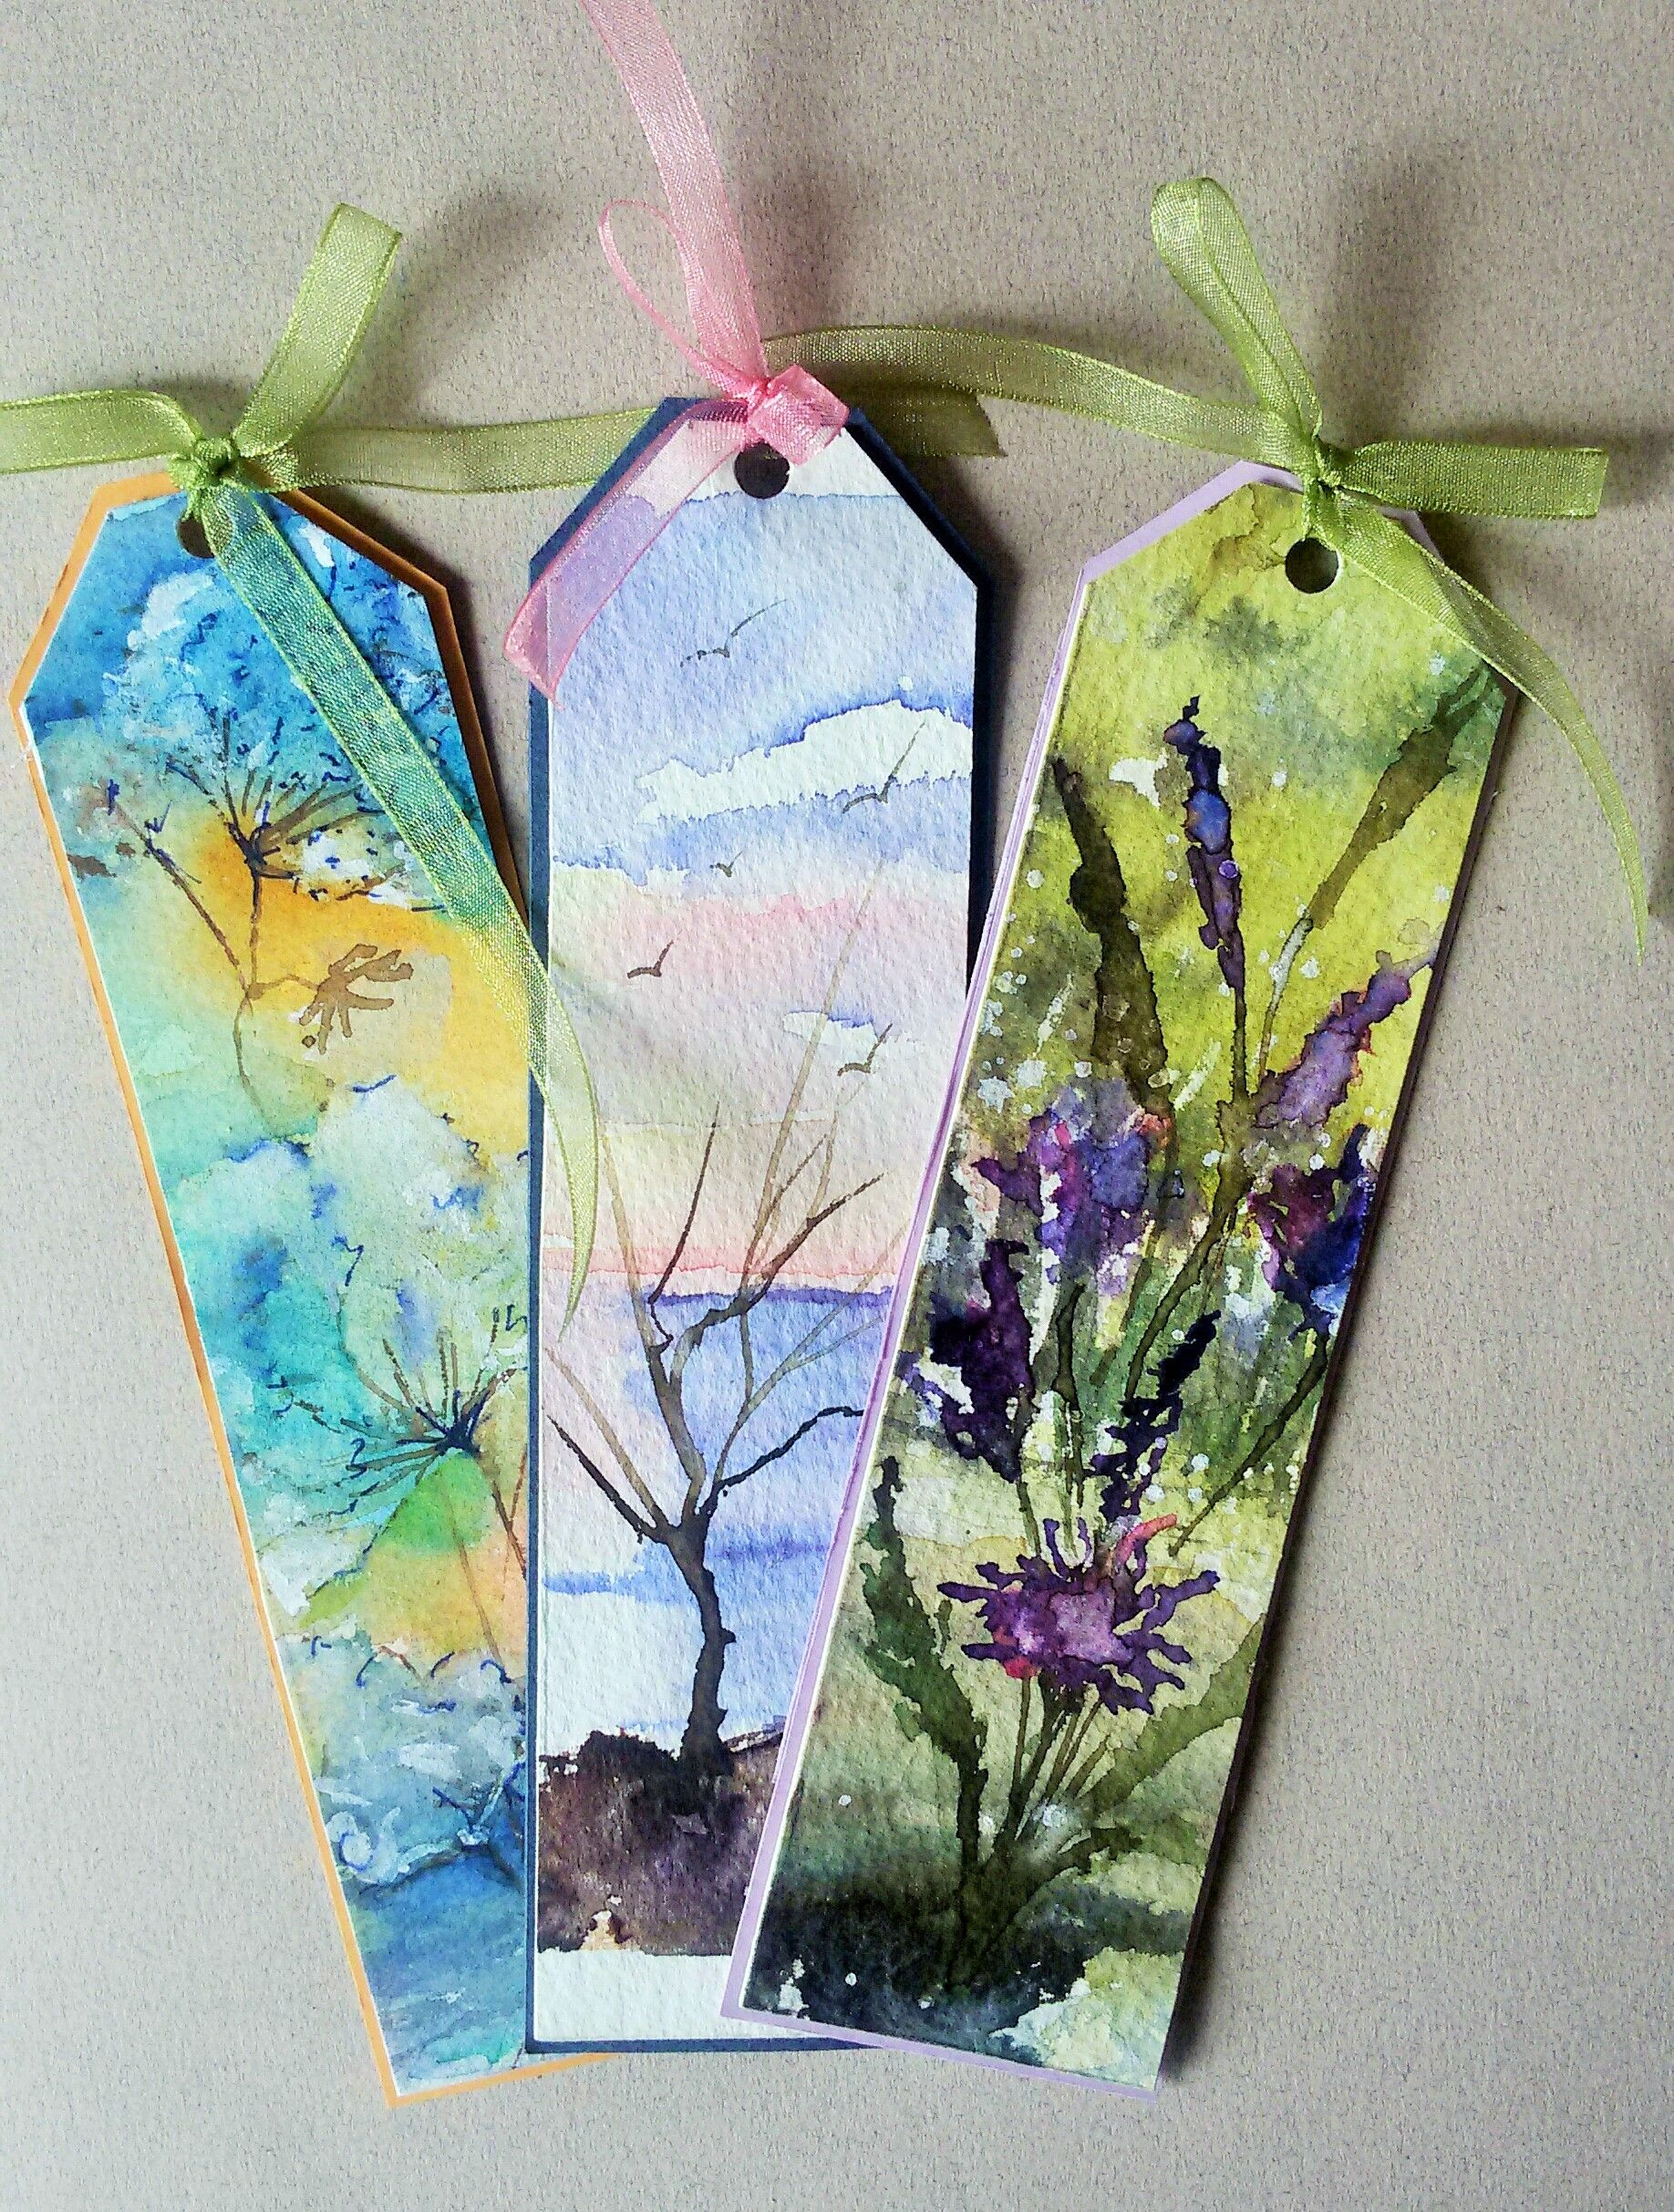 Watercolor bookmarks - Suluboya Kitap Ayra Lar Http Urun Gittigidiyor Com Antika Sanat Handmade Bookmarksbookmark Ideaswatercolor